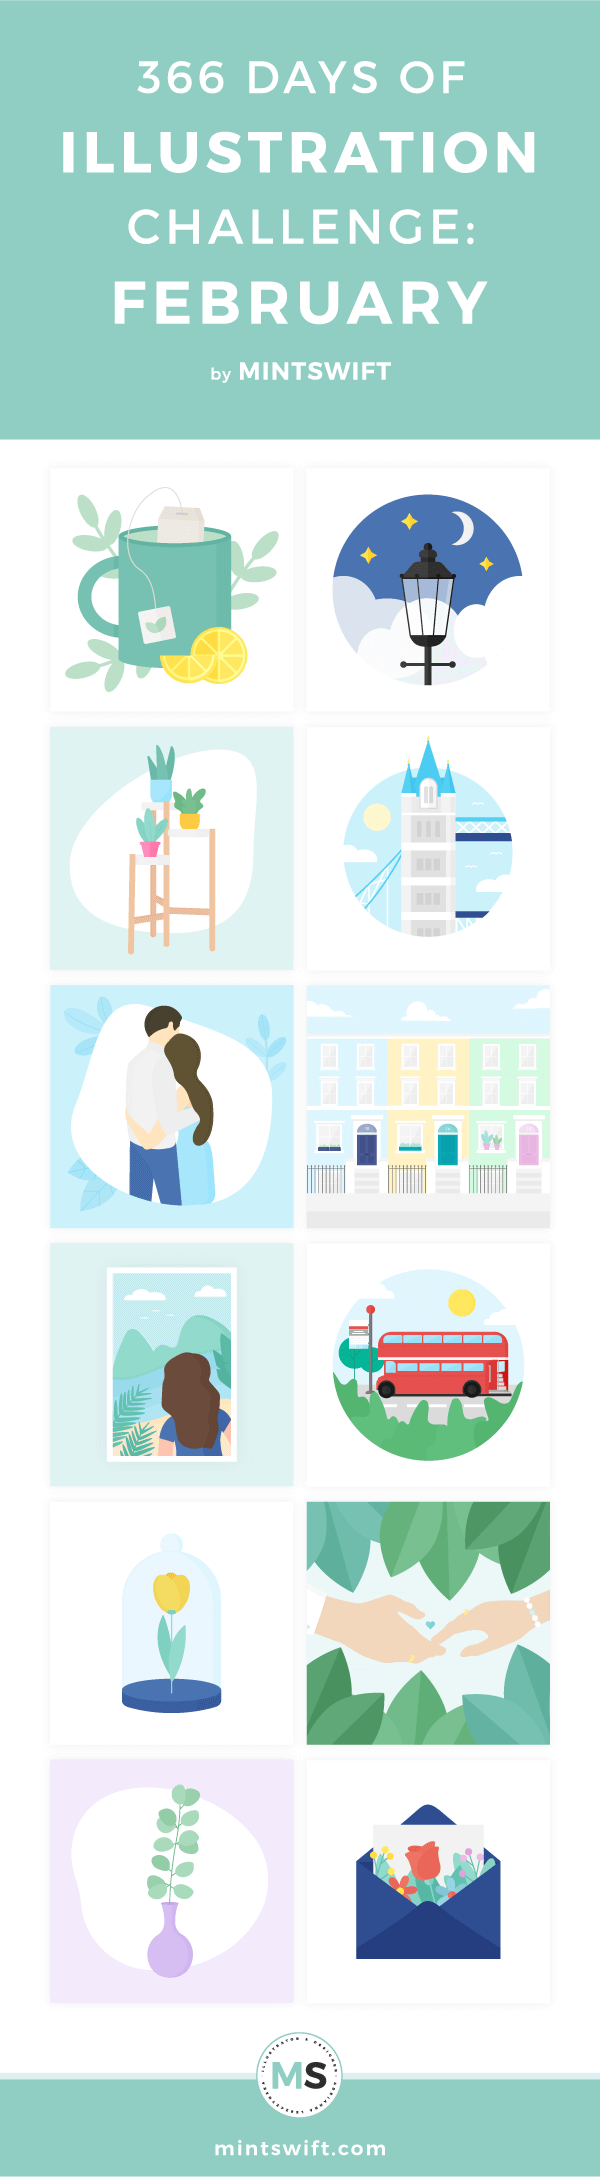 Top 12 vector illustrations inspired by nature, London, tea & love from the second month of my one year of illustration challenge in flat design style